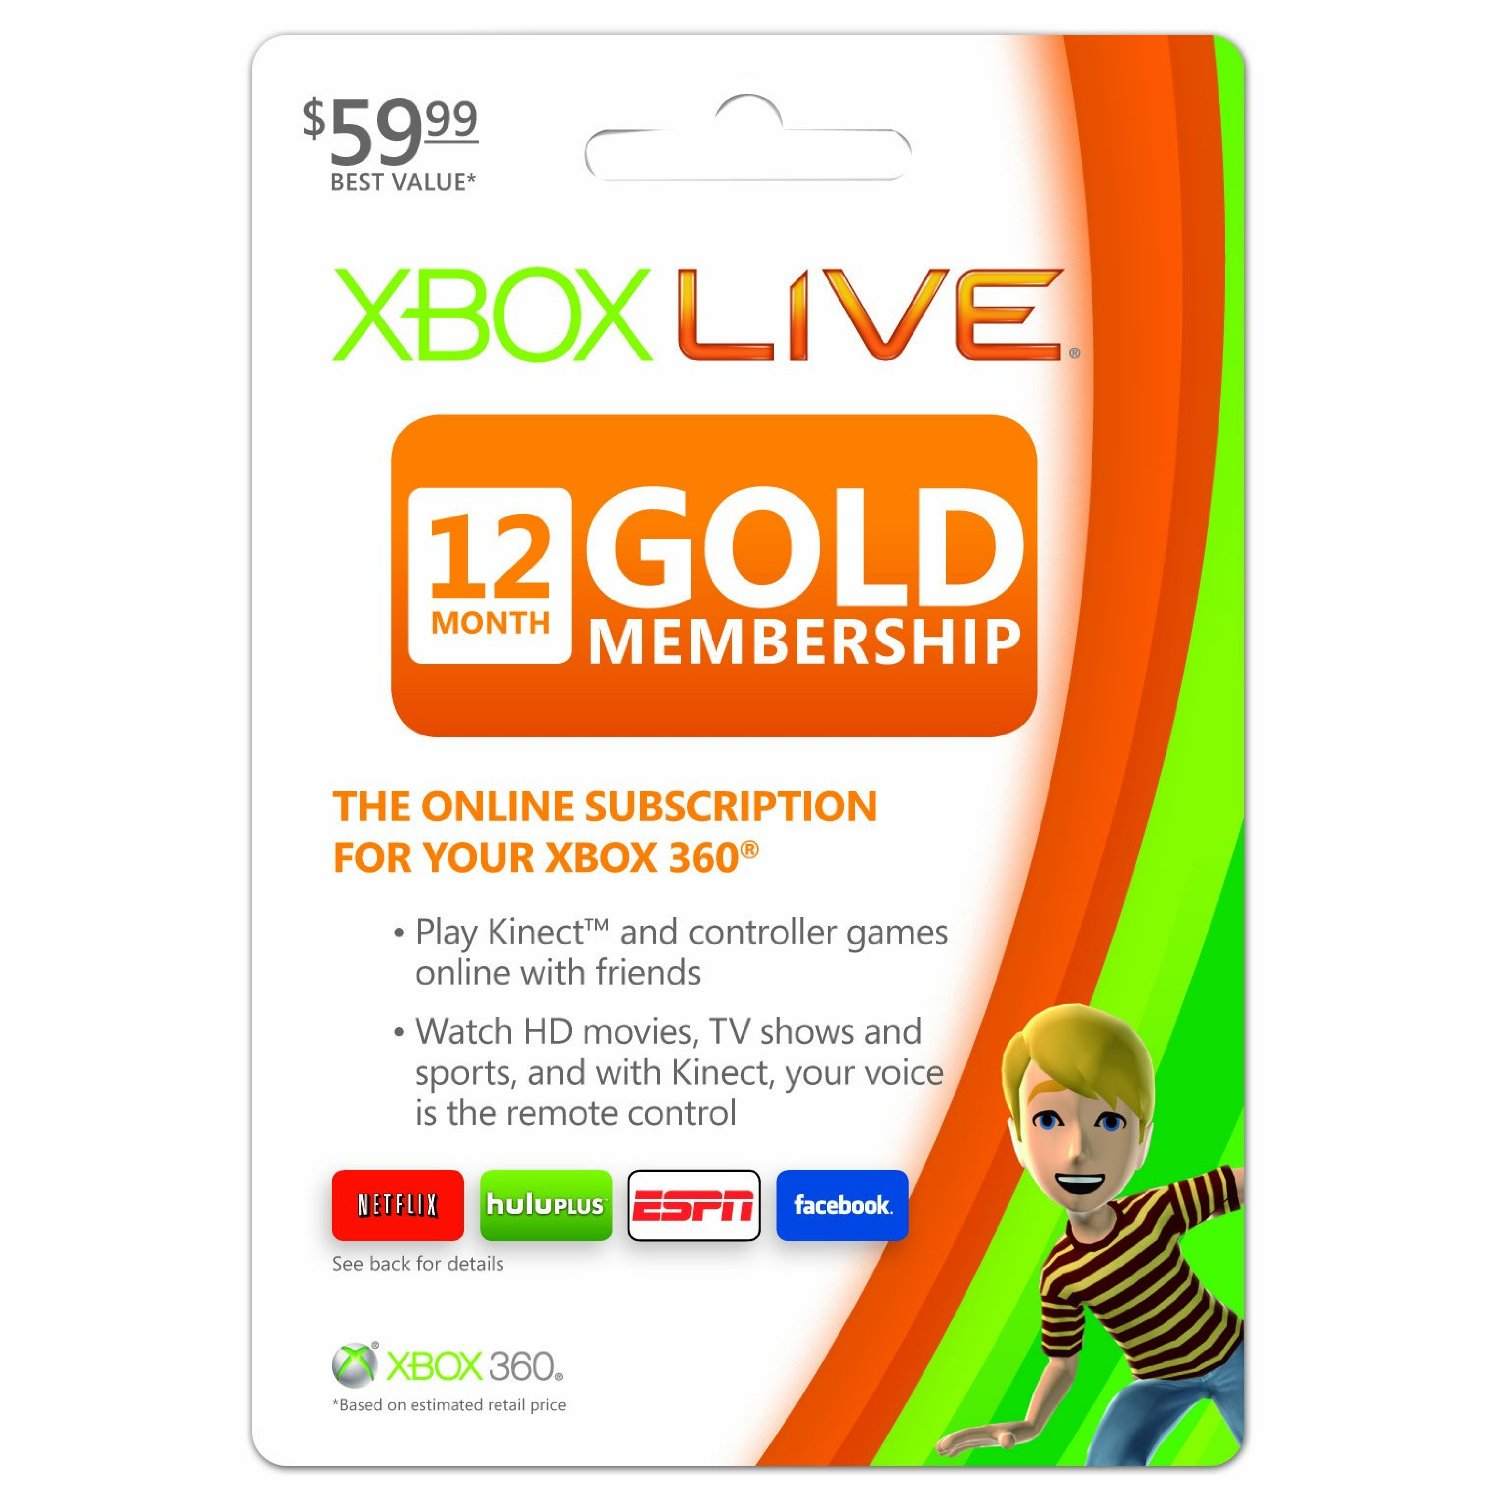 Xbox 360 Live Subscription Gold Card Xbox LIVE 1 year Subscription $35 on eBay and Going Fast